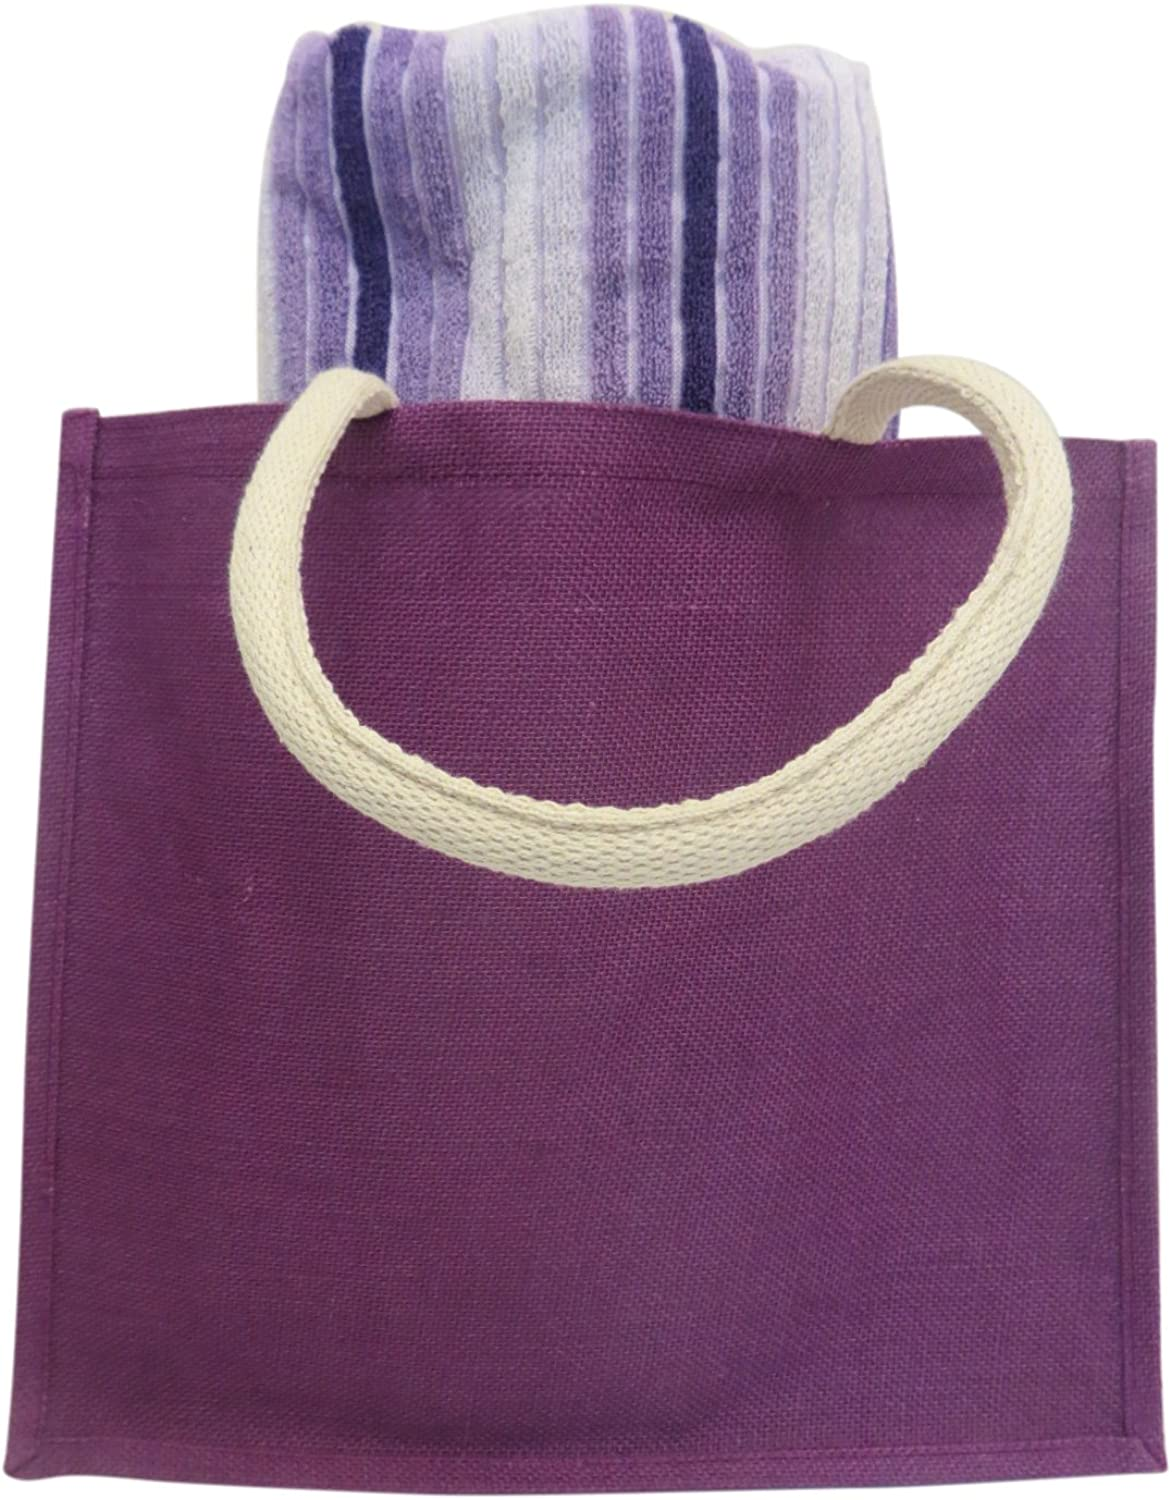 Purple Burlap Beach Bag Large Tote with Striped Beach Towel Gift Set for Girls and Women 40 x 70